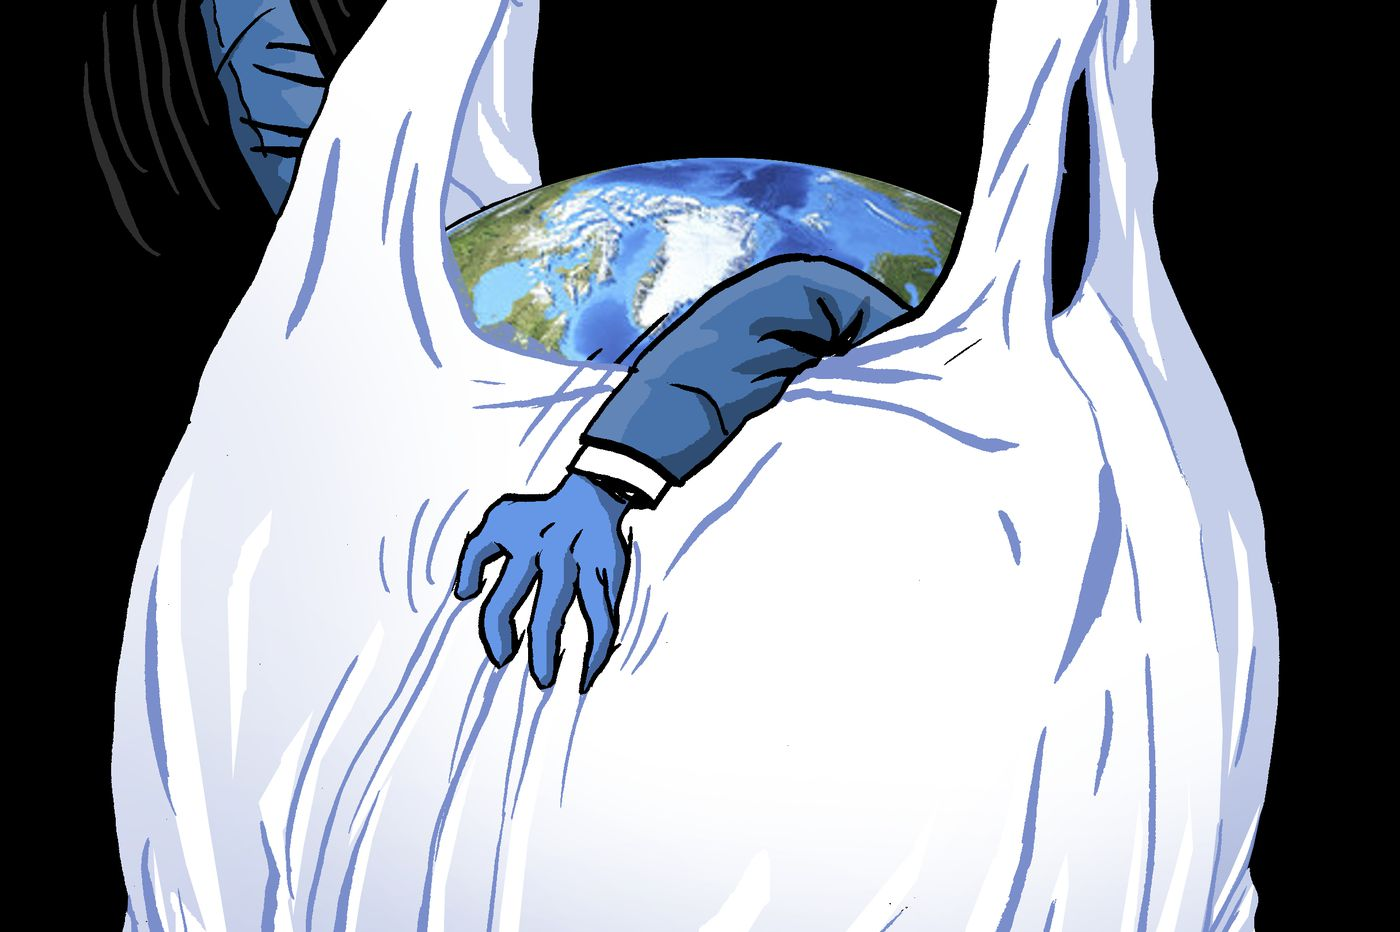 Earth Day 2019: Environmental distress and calls to action from editorial cartoonists